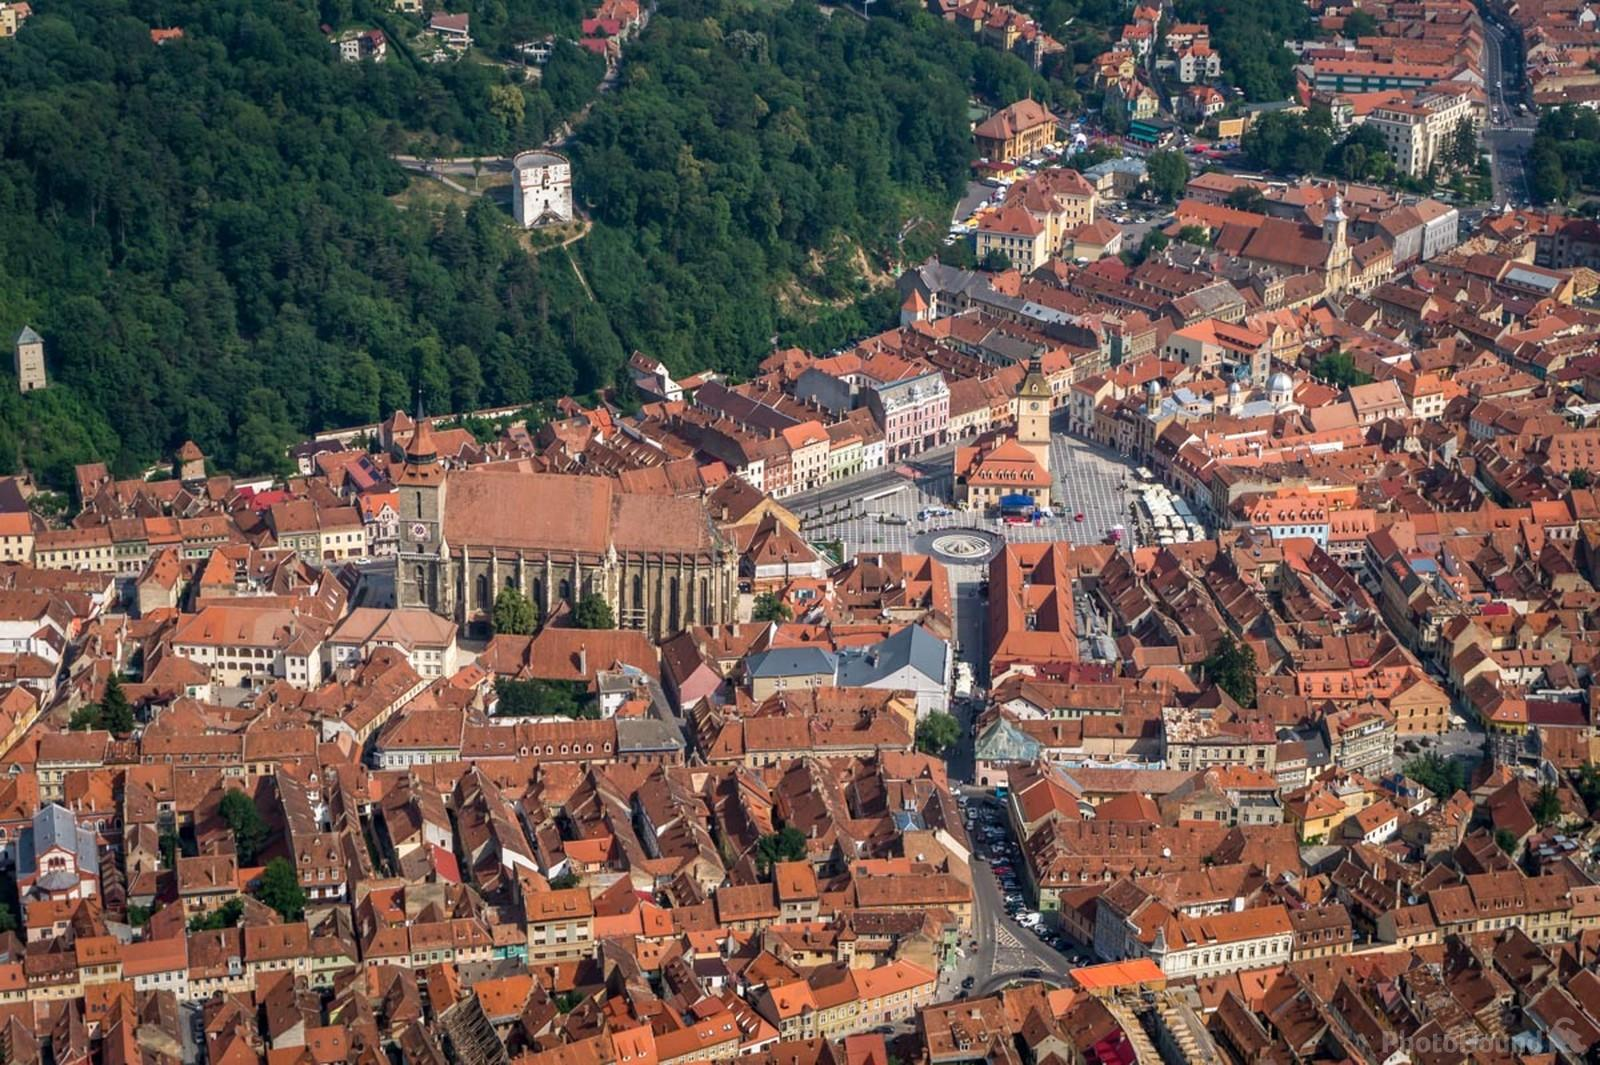 Brasov is a lovely town in Transylvania, Romania. It was founded by the German colonists in the 13th century.